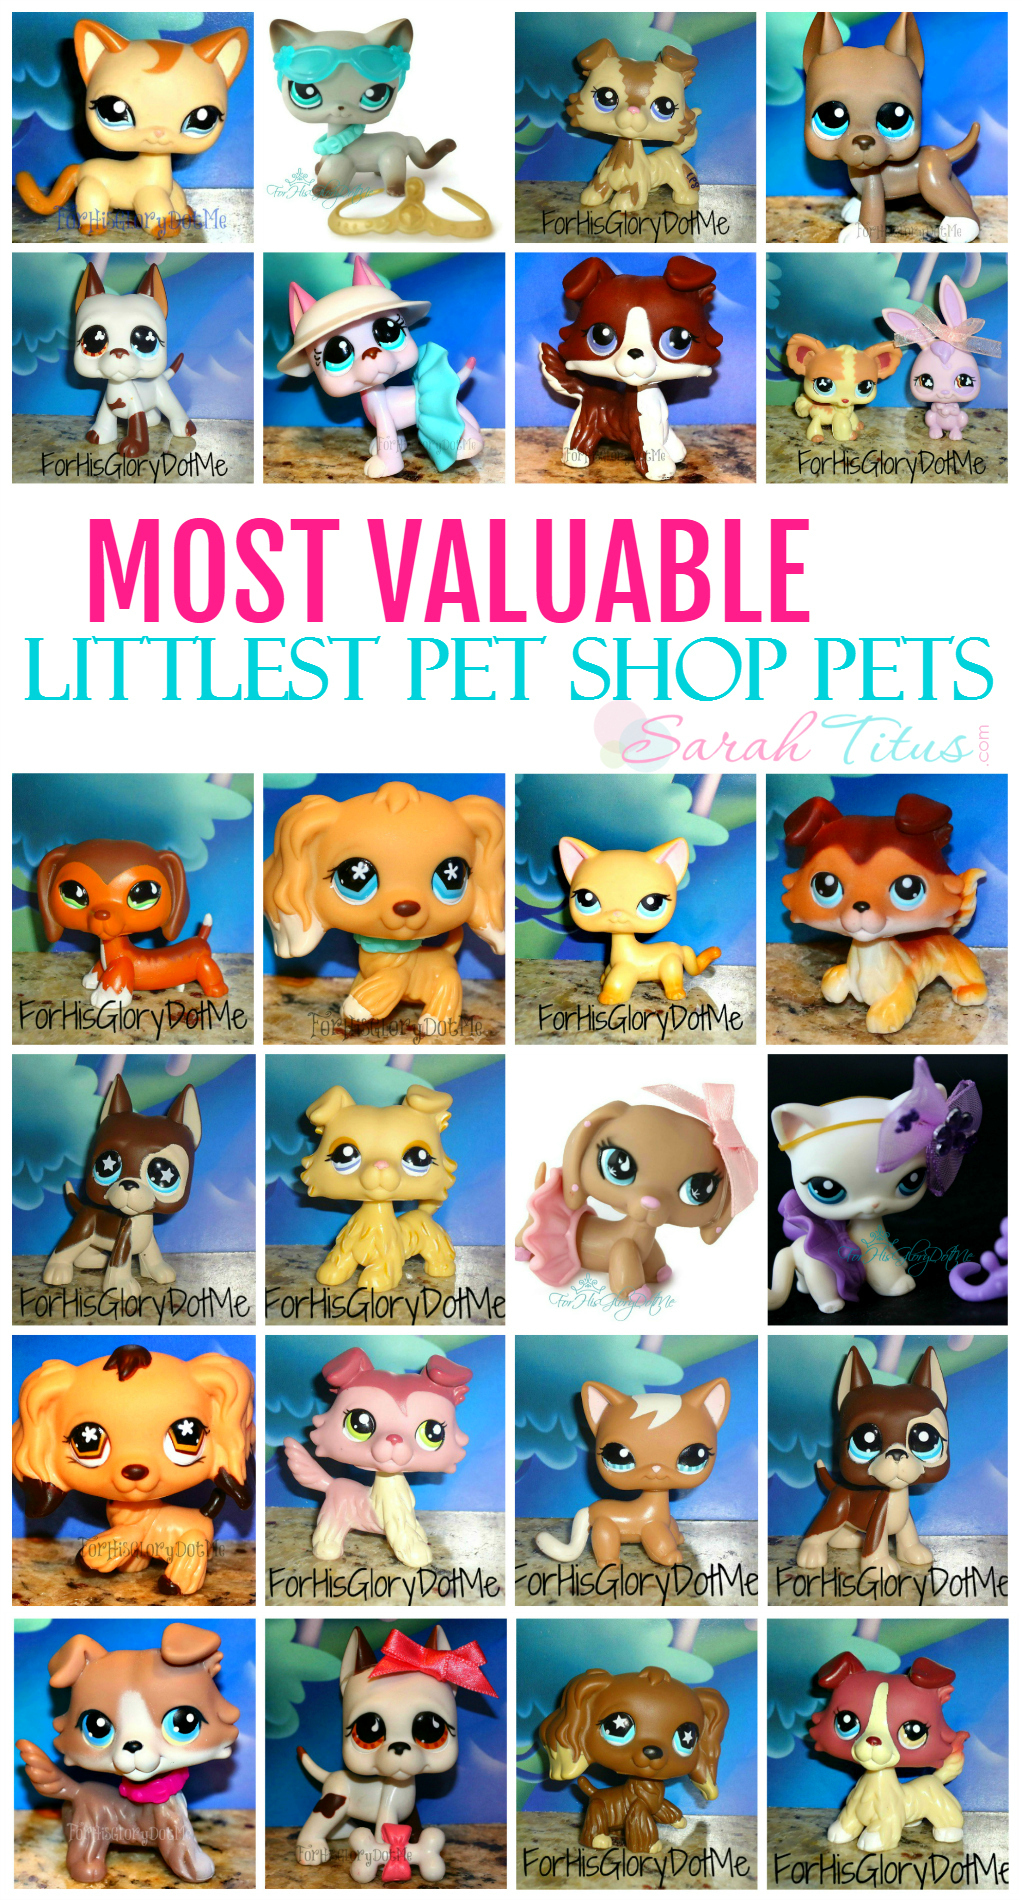 Rare Littlest Pet Shop List – Make Money on eBay